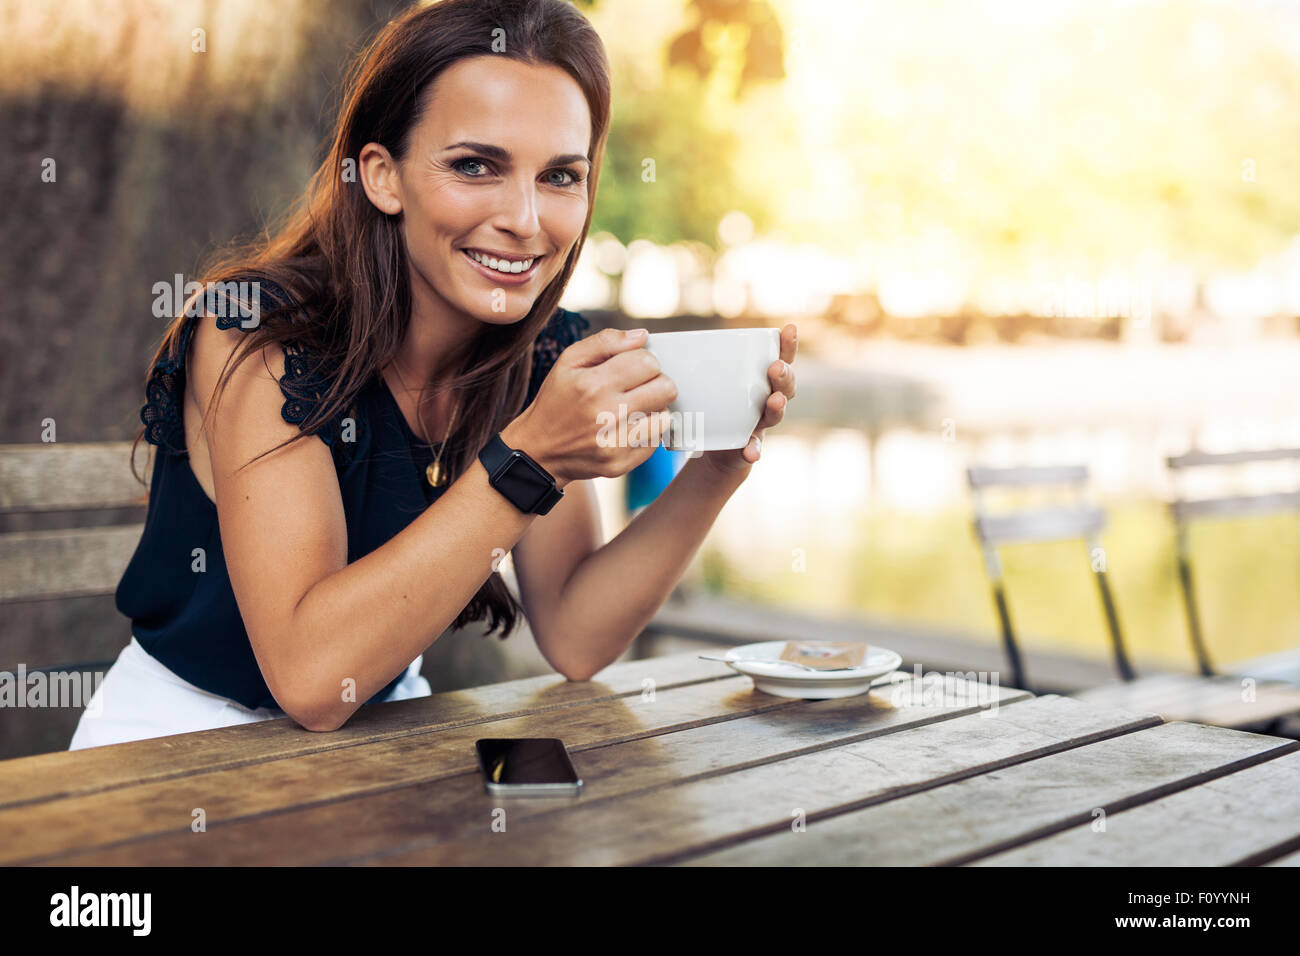 Portrait of beautiful young woman sitting at a table with a cup of coffee in hand looking at camera smiling while - Stock Image